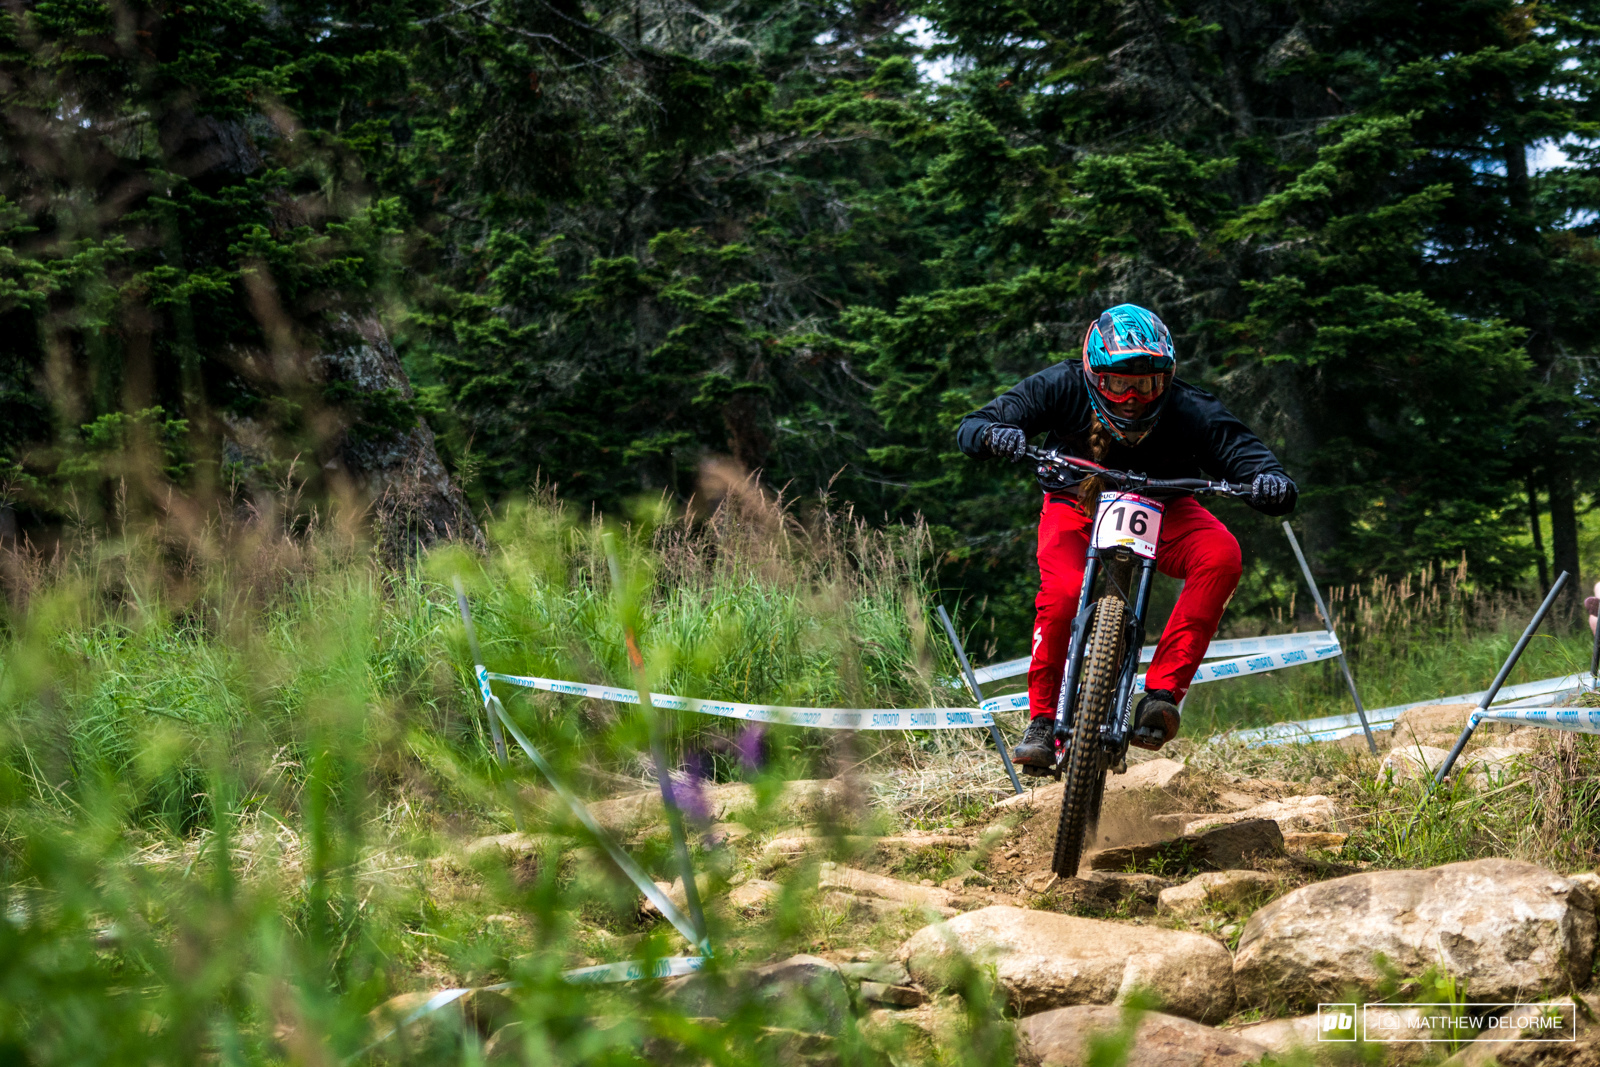 Miranda Millier was smashing it after a long week at altitude in Aspen. Miller qualified 5th.